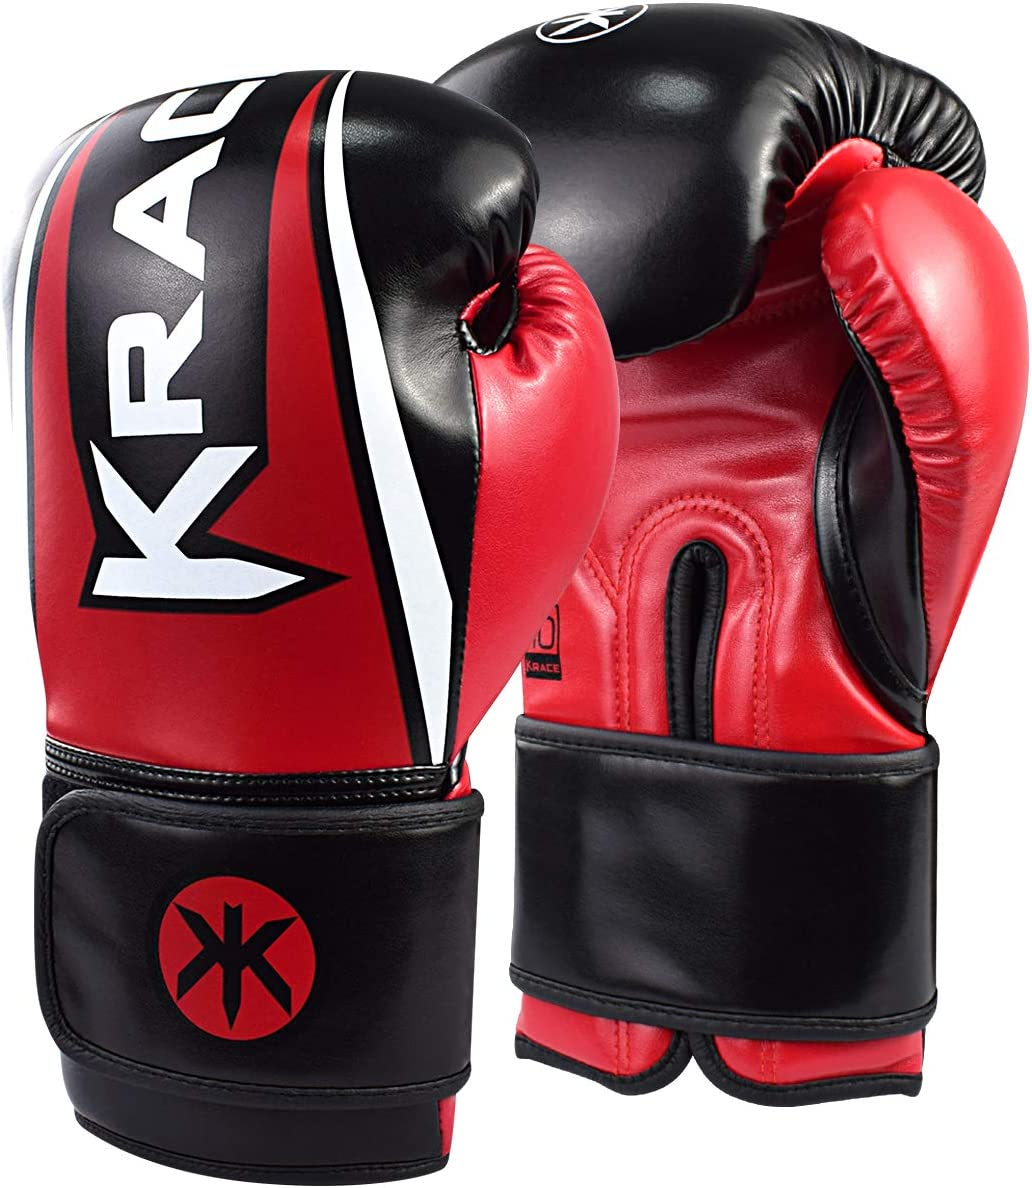 KRACE Boxing Gloves 6oz 8oz 10oz 12oz 14oz 16oz for Kids Youth Men Women, Training Muay Thai Gloves for Sparring, Punching Bag, Kickboxing, Focus Pads